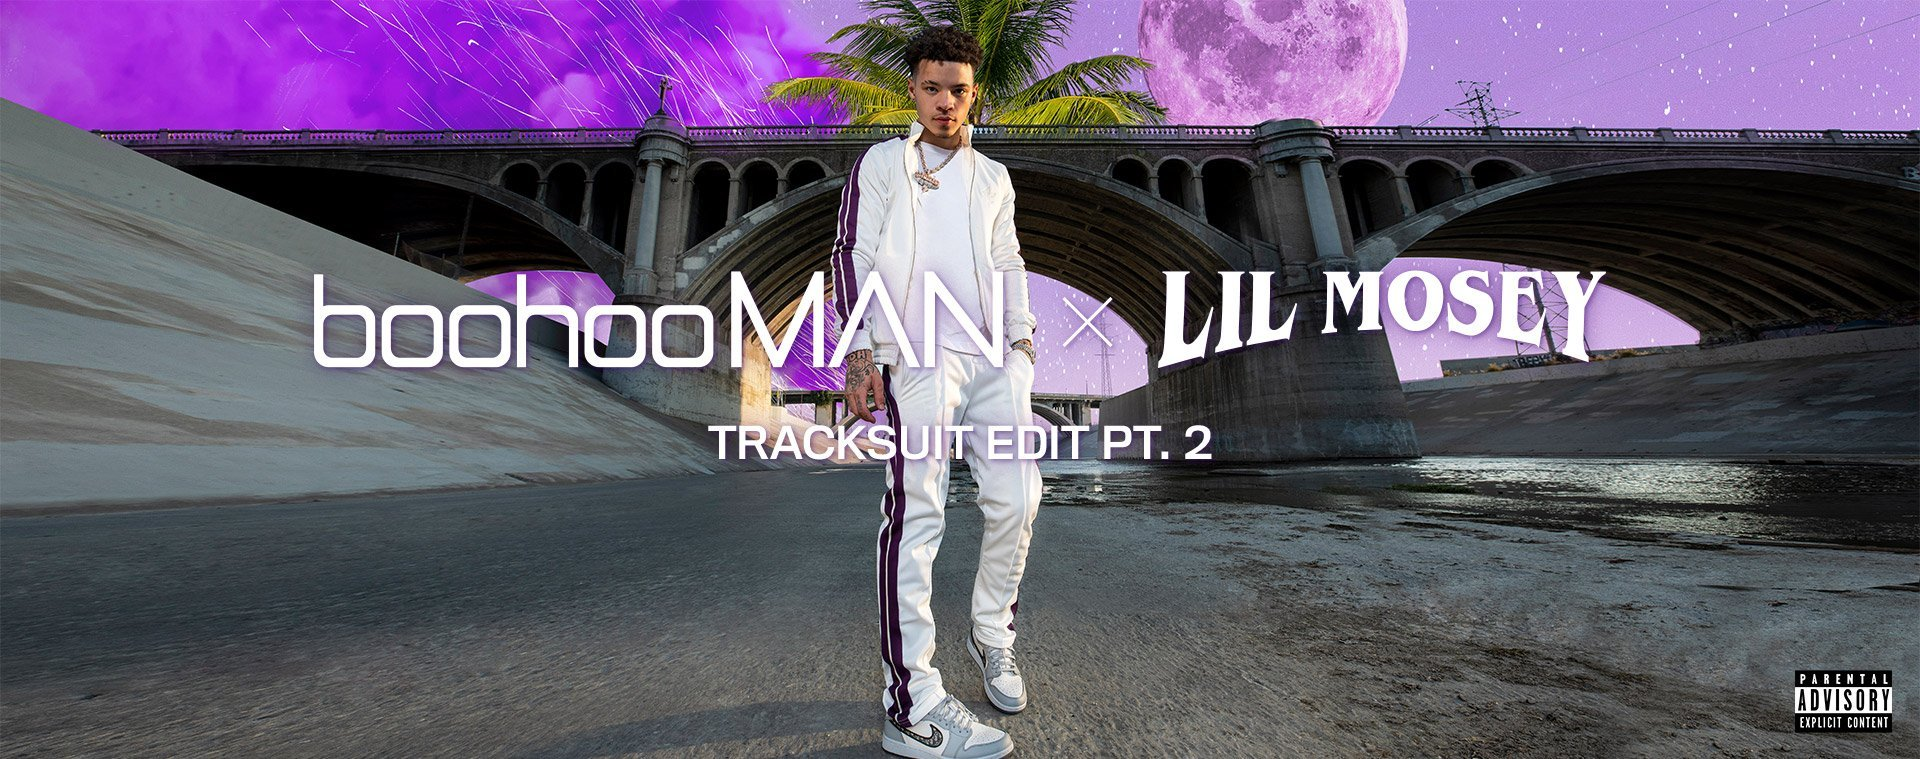 Lil Mosey Tracksuit Edit